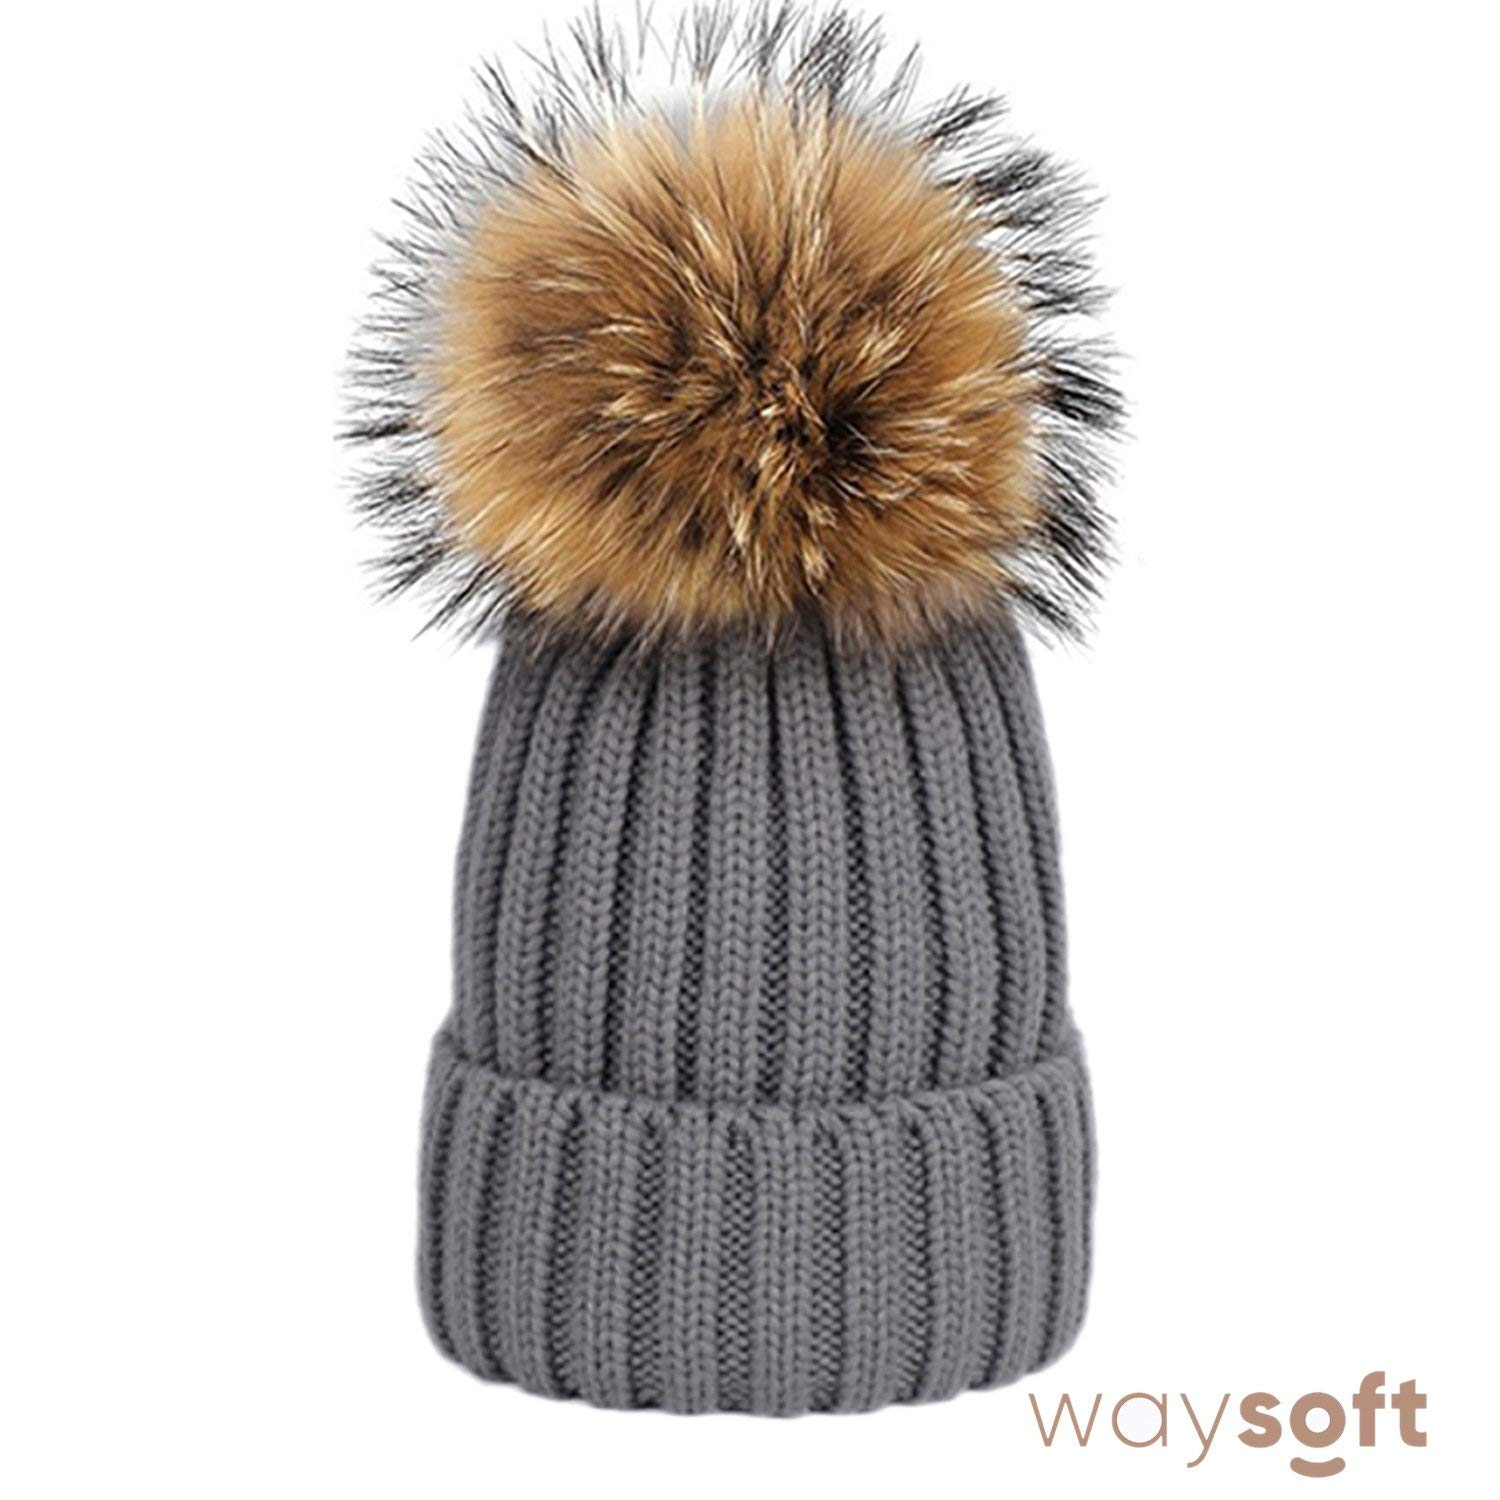 cf0b37ec0a0e56 Get Quotations · WaySoft Mother-Child Matching Genuine Fur Pom Pom Hats – Knit  Beanie Hat Matching Ski